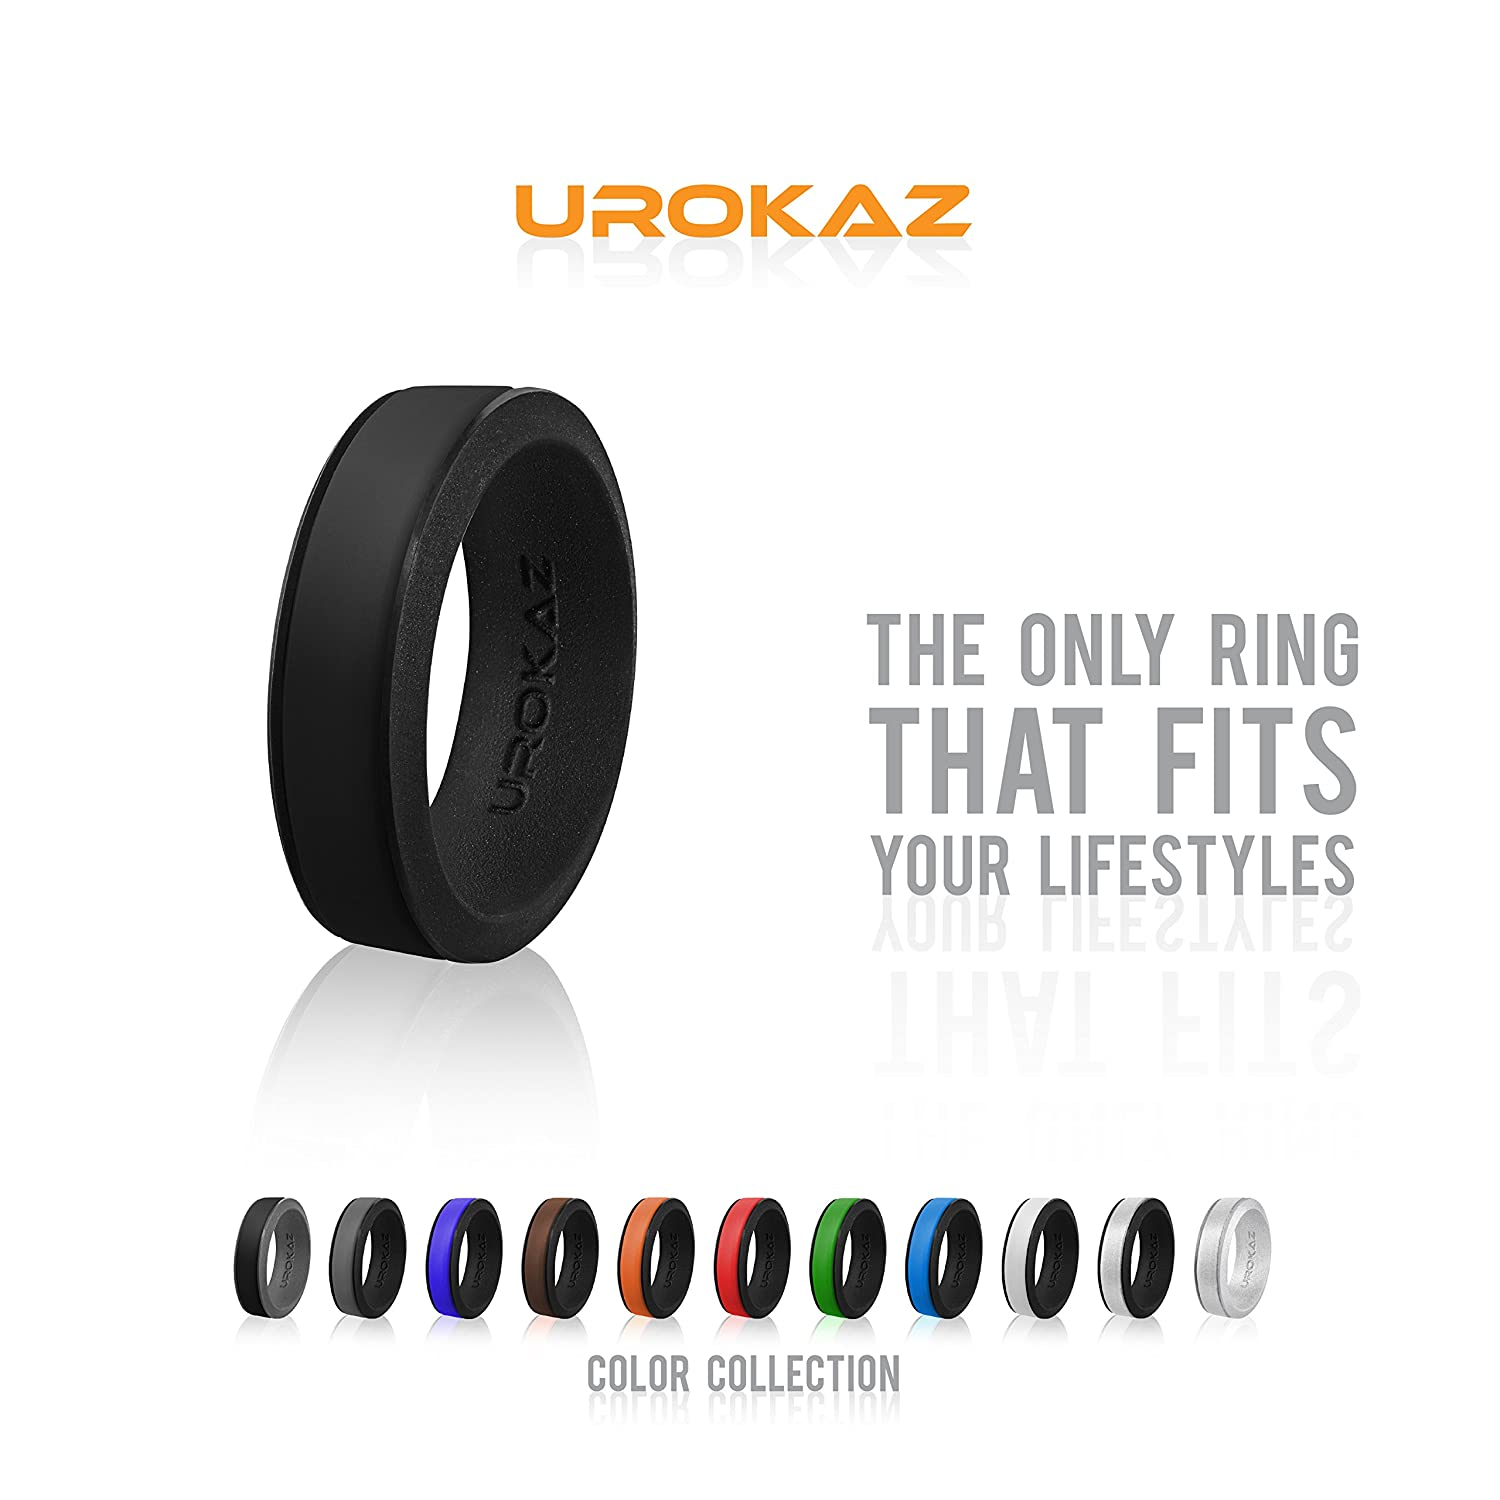 UROKAZ - Silicone Fashion Rings, The Only Ring that Fits Your Lifestyles - Whether You are Single or Married, UROKAZ Ring is Right for You - It is Fashionable, Flexible, and Comfortable